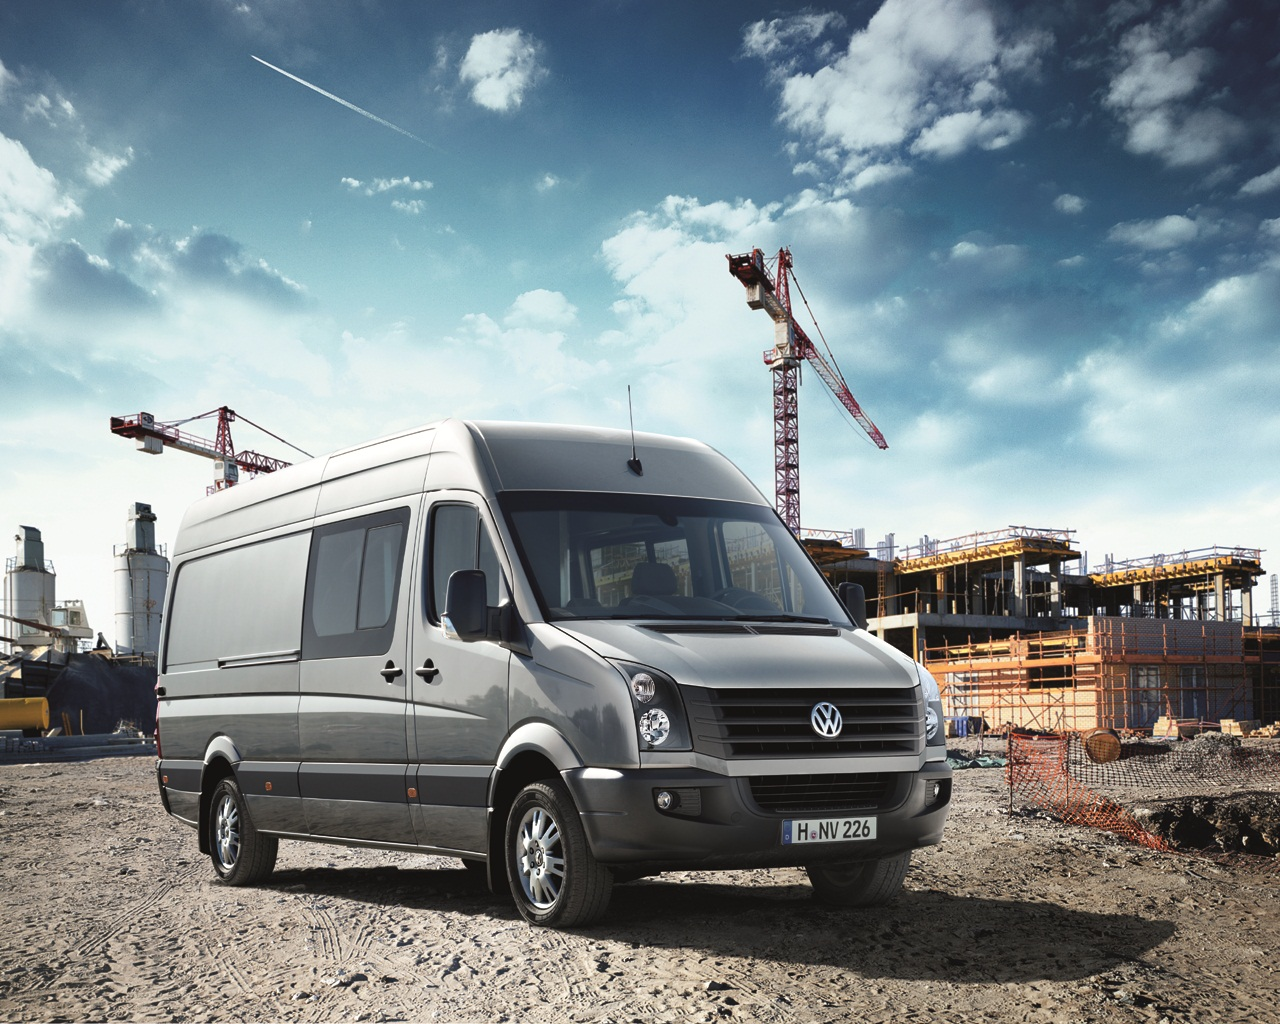 Volkswagen Crafter Wallpapers HD